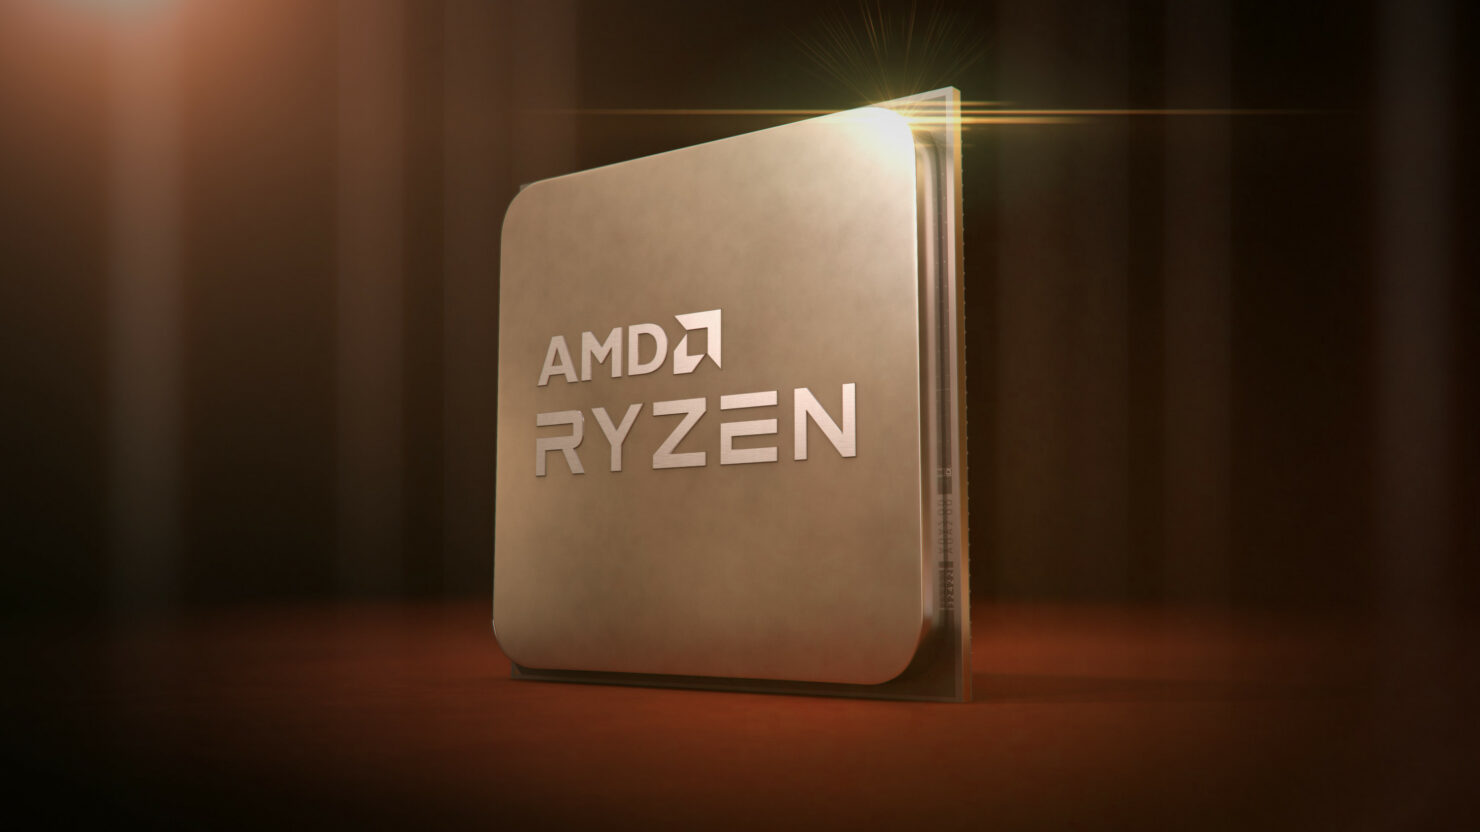 amd-allegedly-launching-ryzen-5000-zen-3-desktop-cpu-with-5-ghz+-clocks,-announcement-planned-for-15th-february